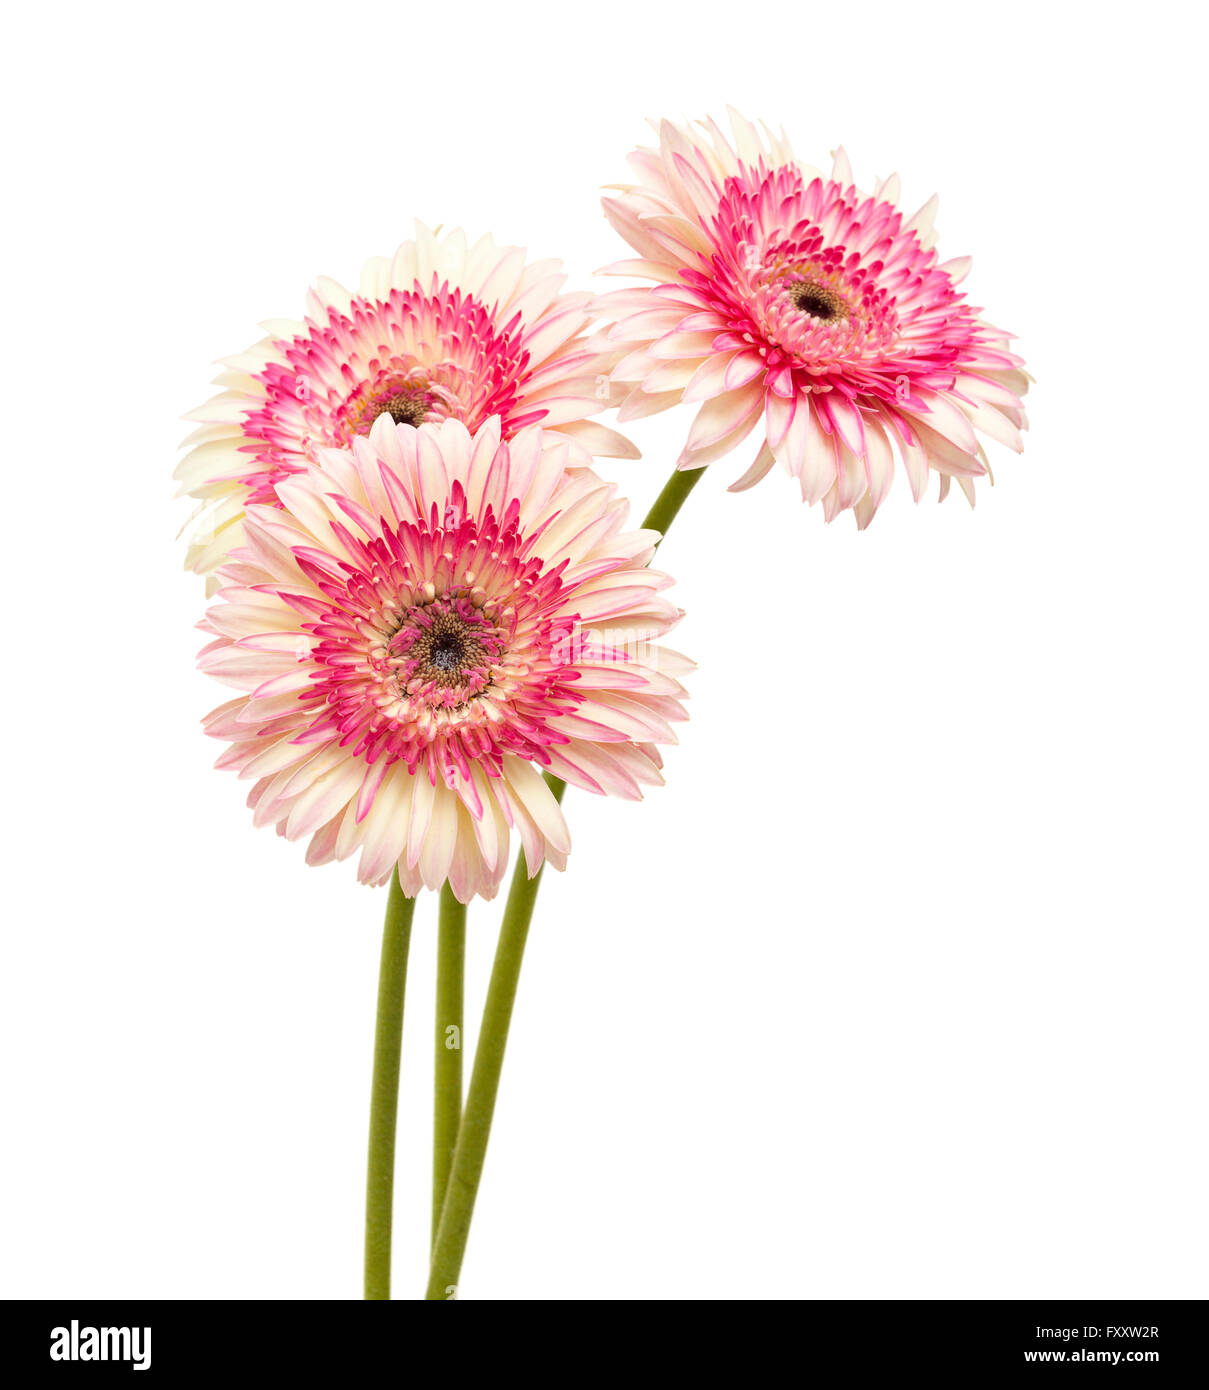 white and magenta gerbera flowers isolated on white background - Stock Image